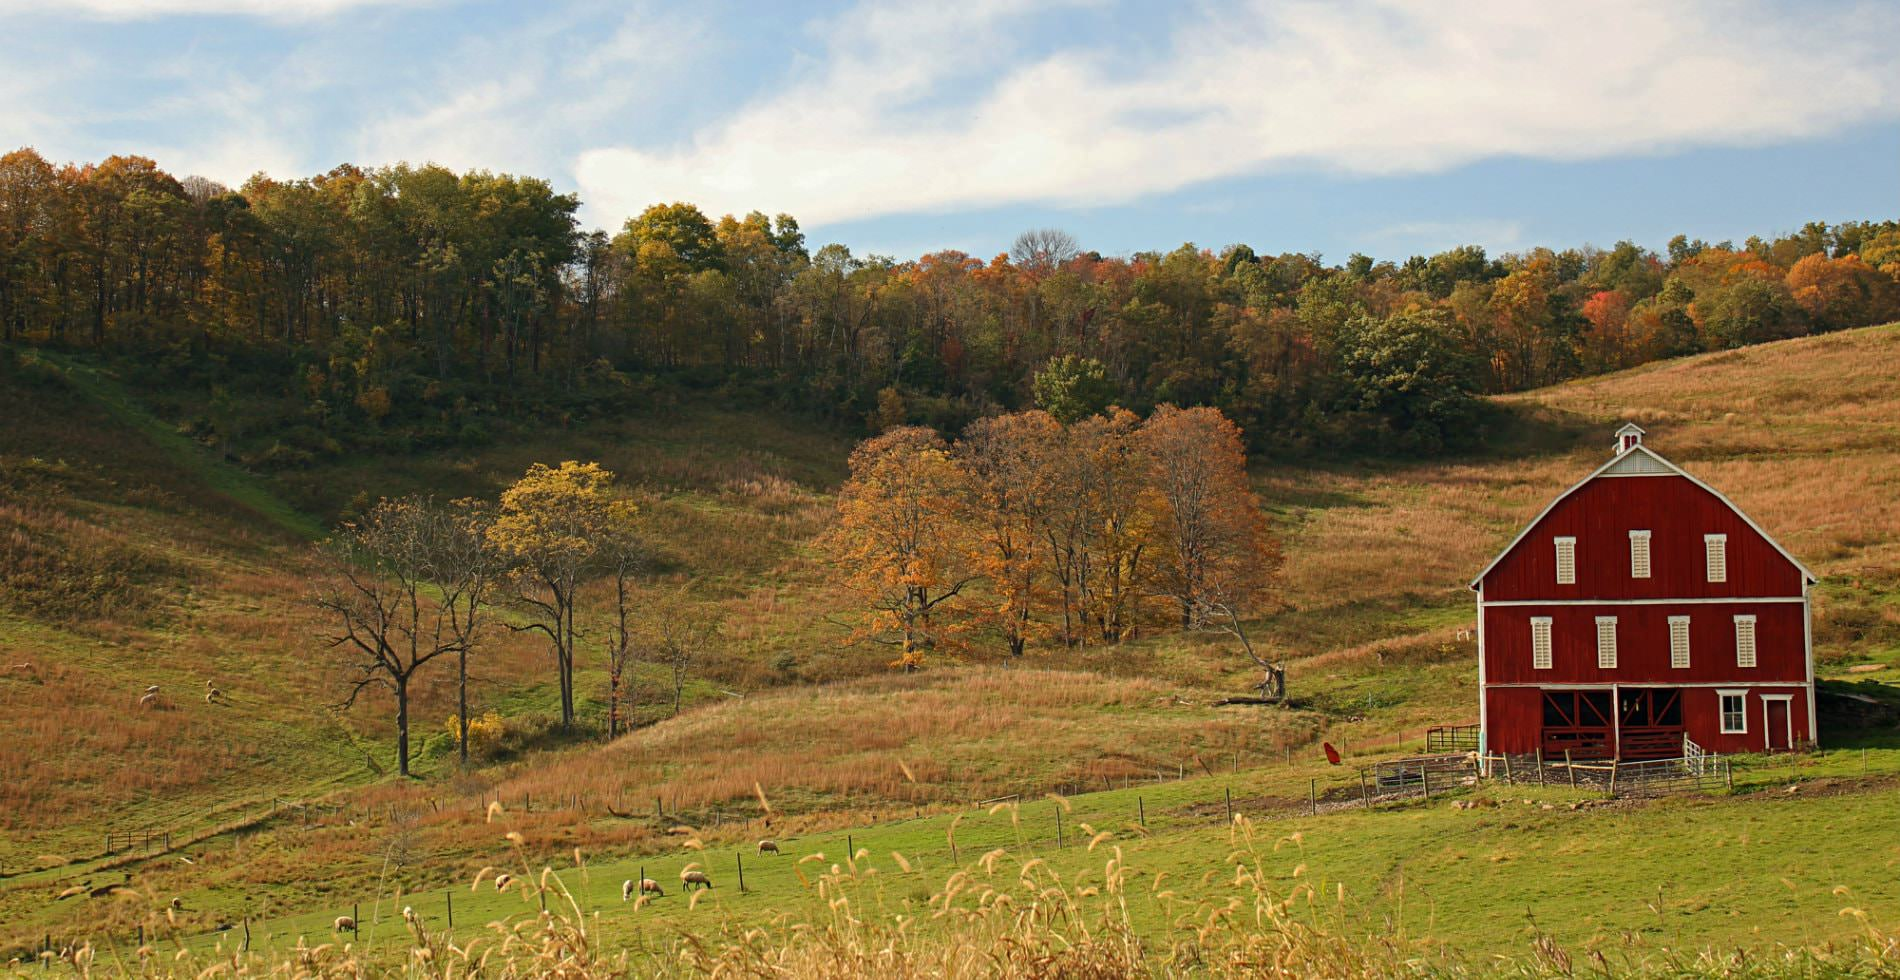 A rolling autumn landscape with a tall red barn in the field, a thick colorful forest in the backdrop.